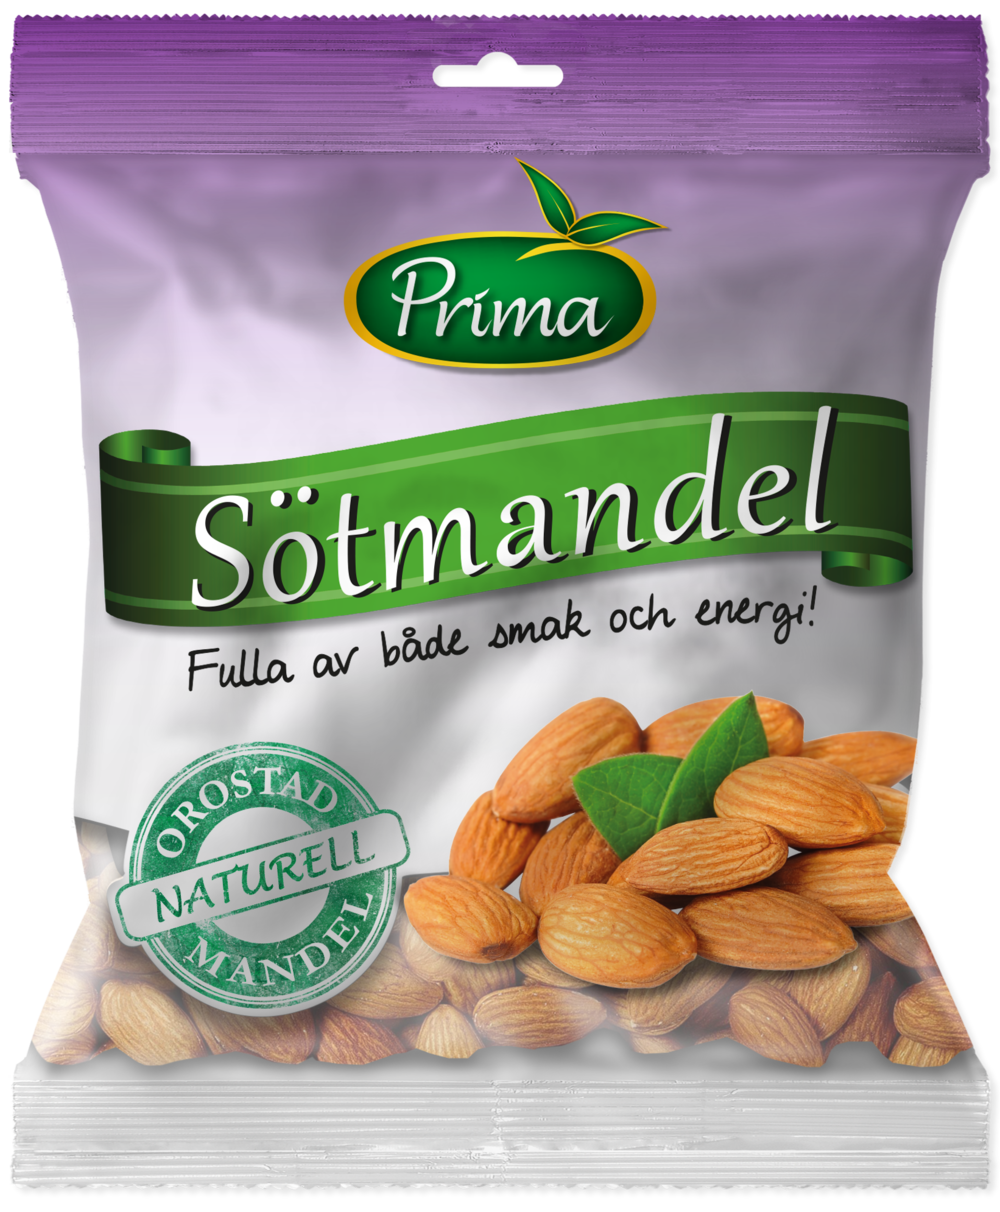 almonds - Almonds natrually are sweet, tasty and crisp. They are also helthy with a high content of monounsaturated fat and rich in vitamin E, calcium and iron. The bag contain 175gIngredients: AlmondsNutritional value per 100gEnergy 585kcal / 2447 kJFett 49g, of which saturated fat 3,7g Carbohydrates 9.5g, of which sugars 3,9gProtein 21gFiber 12gSalt 0g